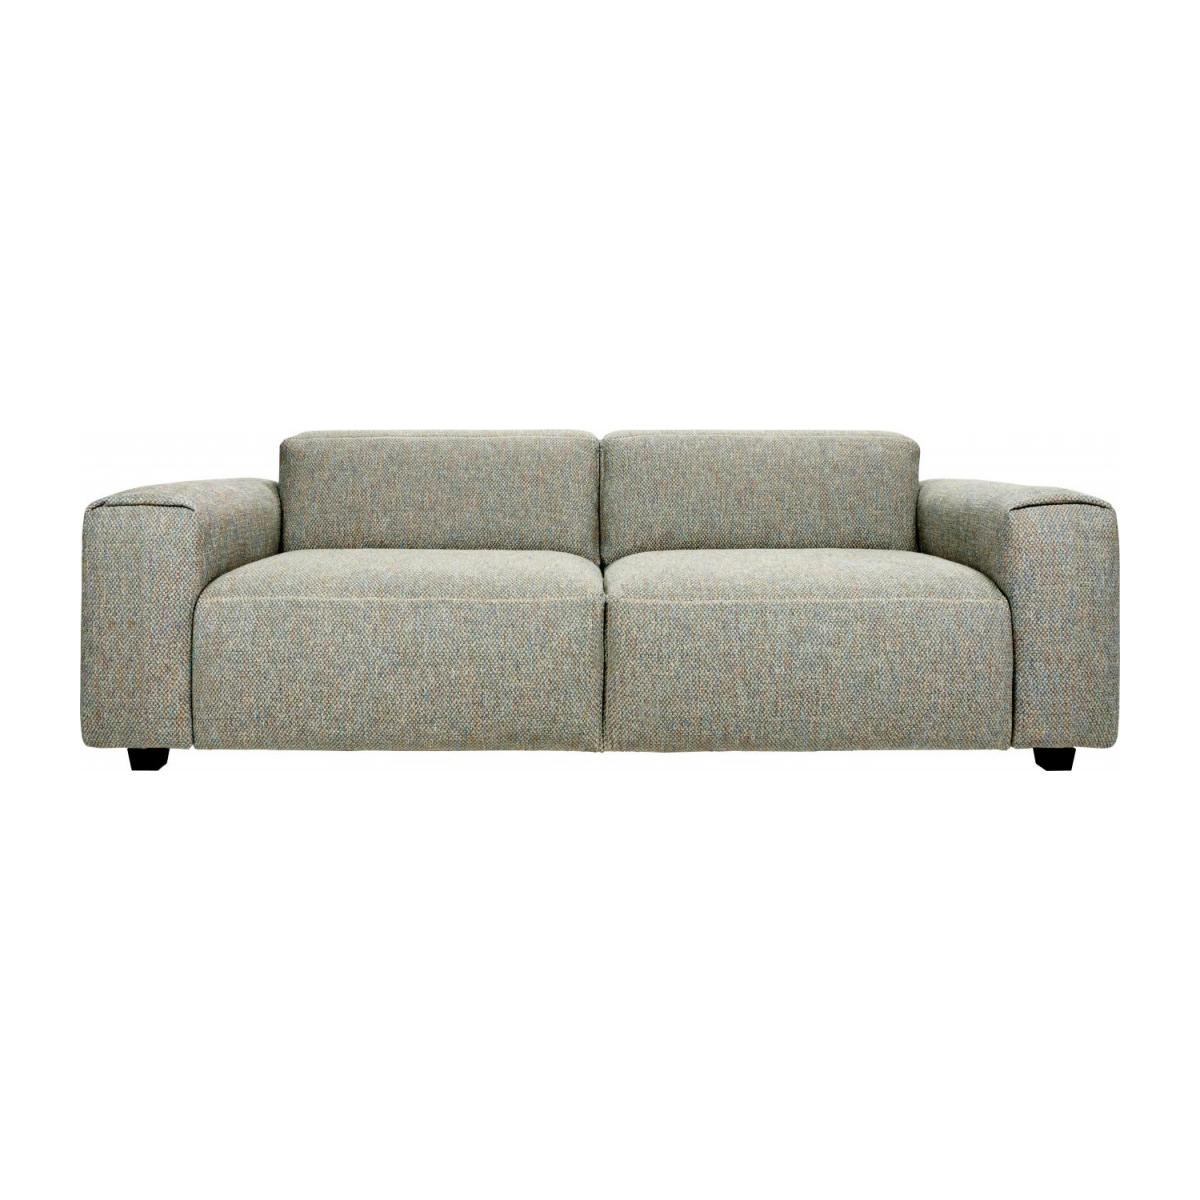 3 seater sofa in Bellagio fabric, organic green n°3